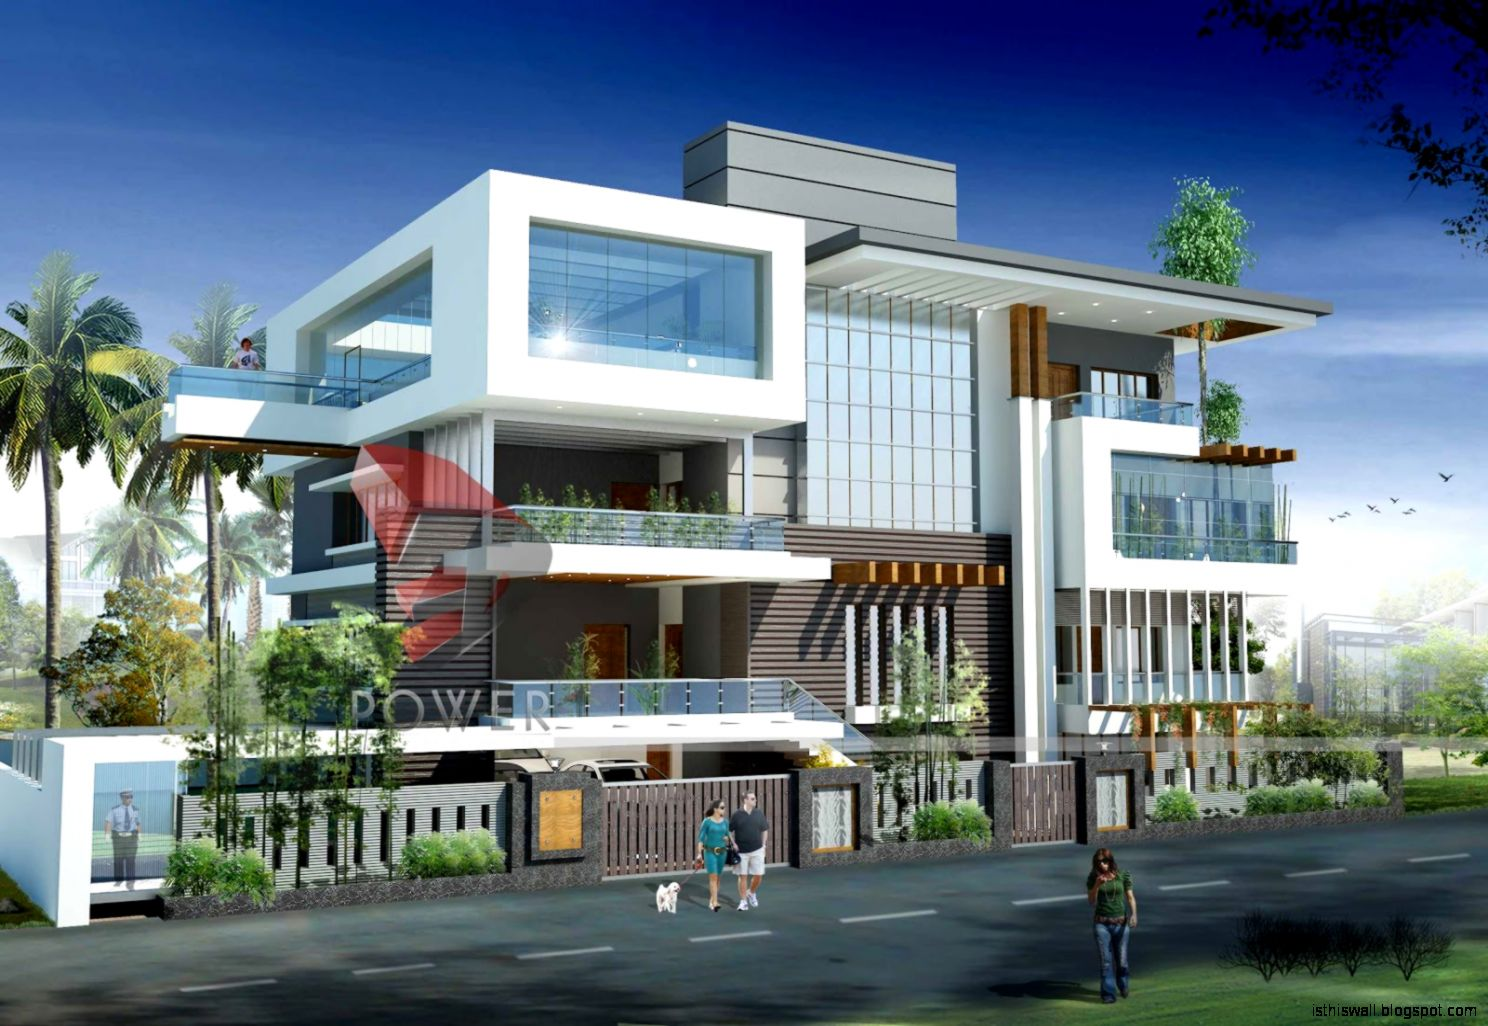 Ultra modern home designs this wallpapers for Modern house designs images